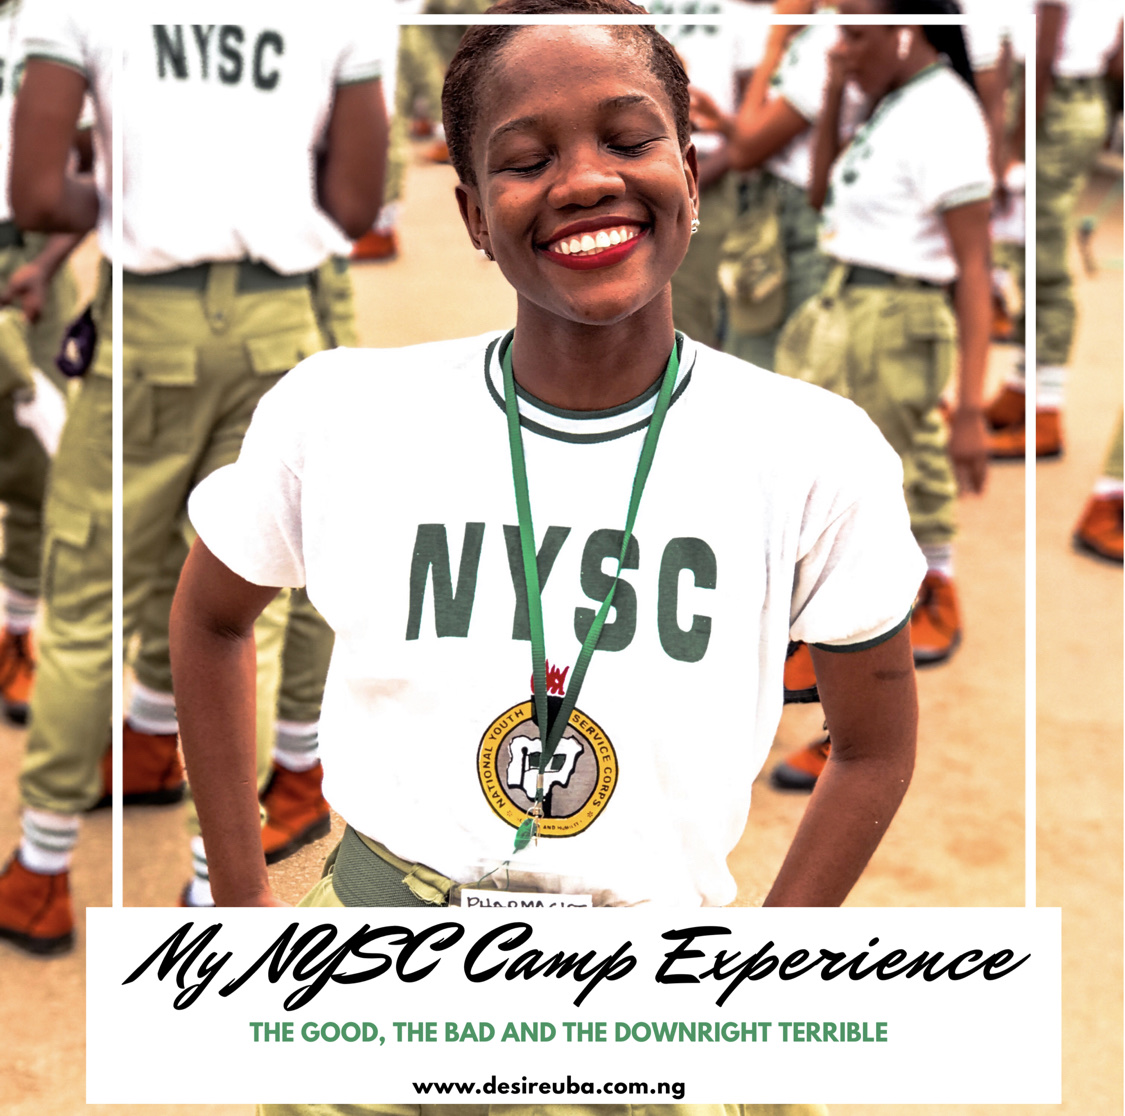 MY LAGOS NYSC CAMP EXPERIENCE: The Good, The Bad And The Terrible